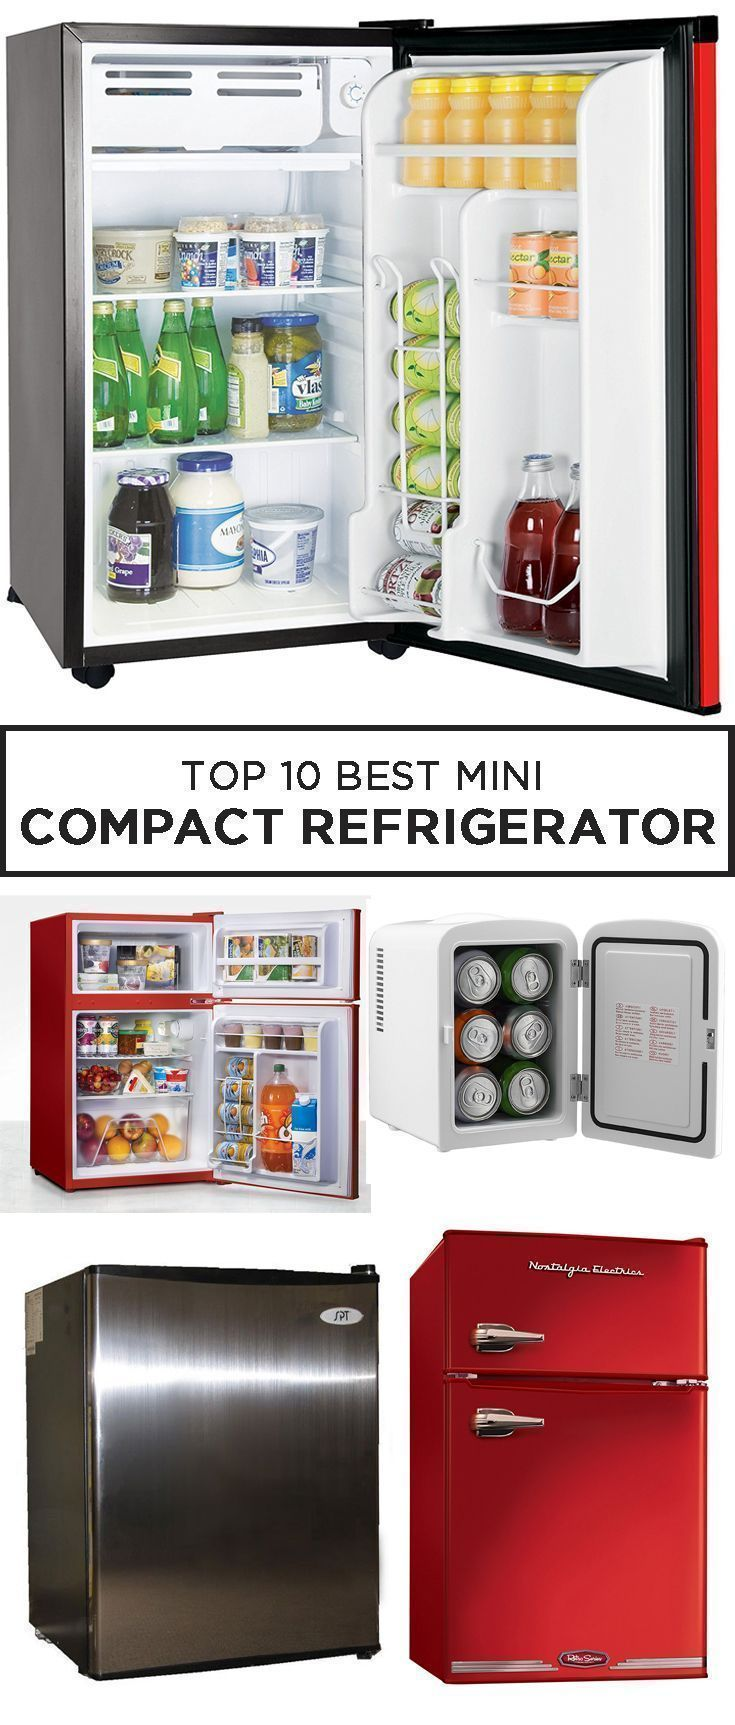 Top 10 Best Mini Compact Refrigerators Reviews Compact In 2020 Mini Fridge In Bedroom Small Refrigerator Compact Refrigerator